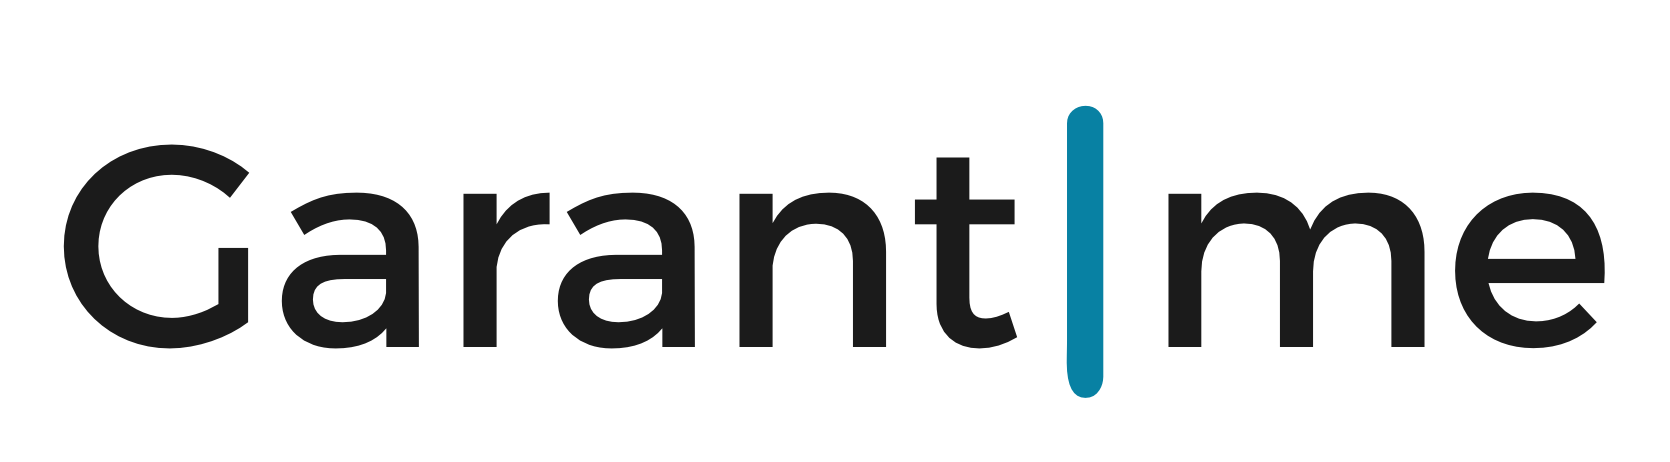 Garantme_black_logo_no_background-1